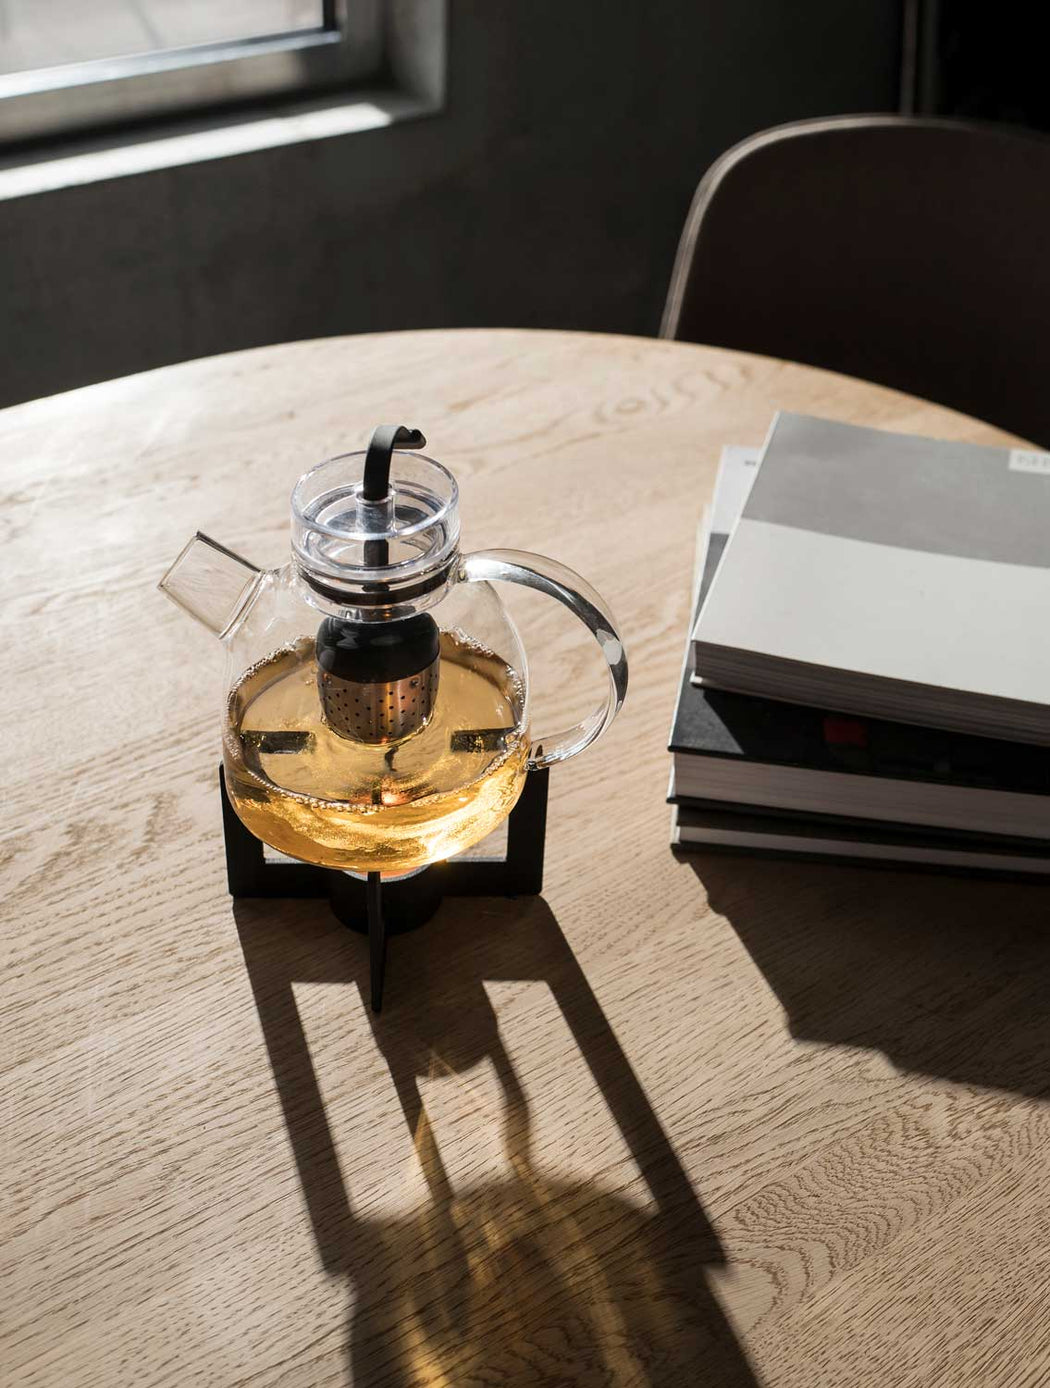 Modern Minimalist Menu Cast Tea Heater